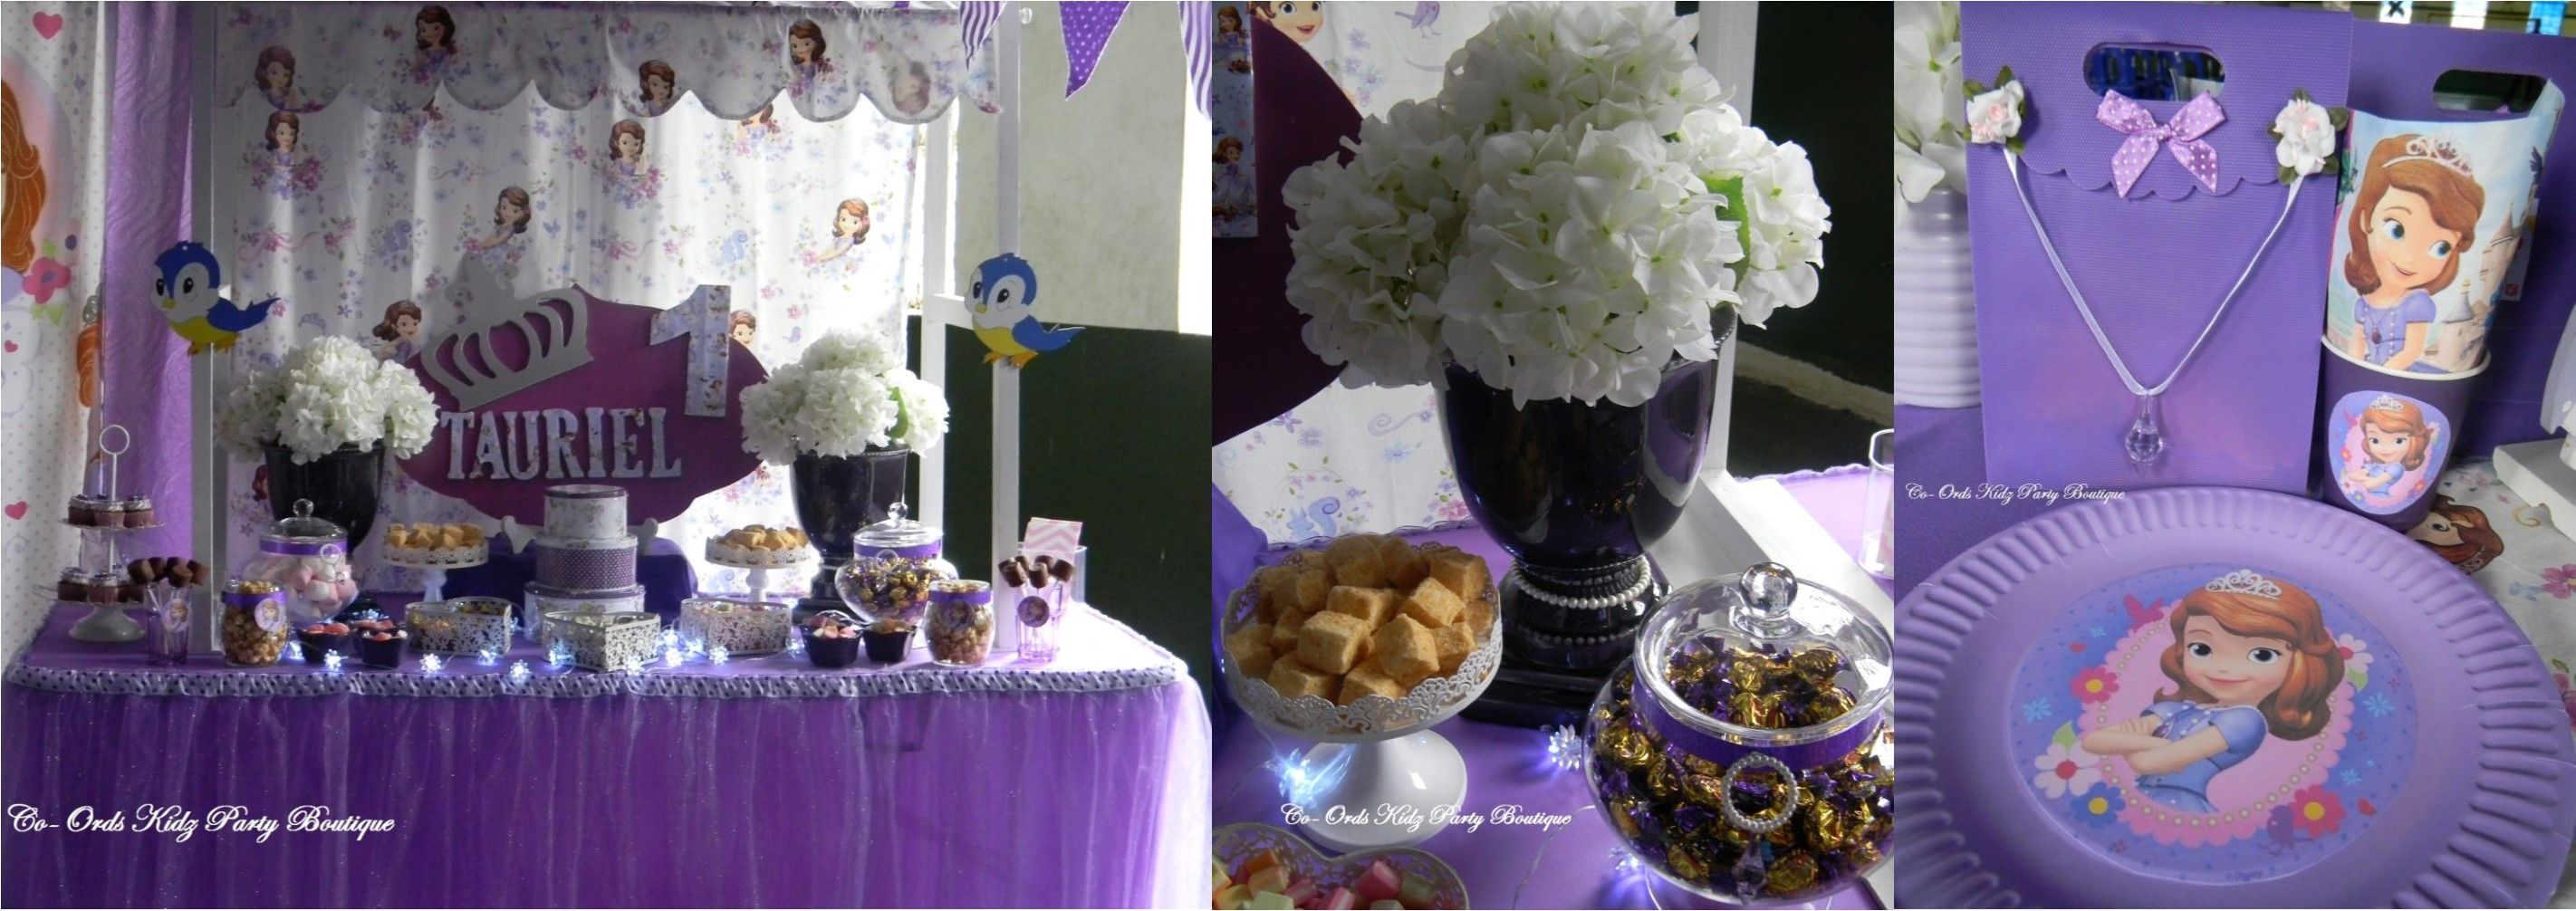 Sofia the 1st Candy Table and kiddies party by Co-Ords Kidz Party Boutique